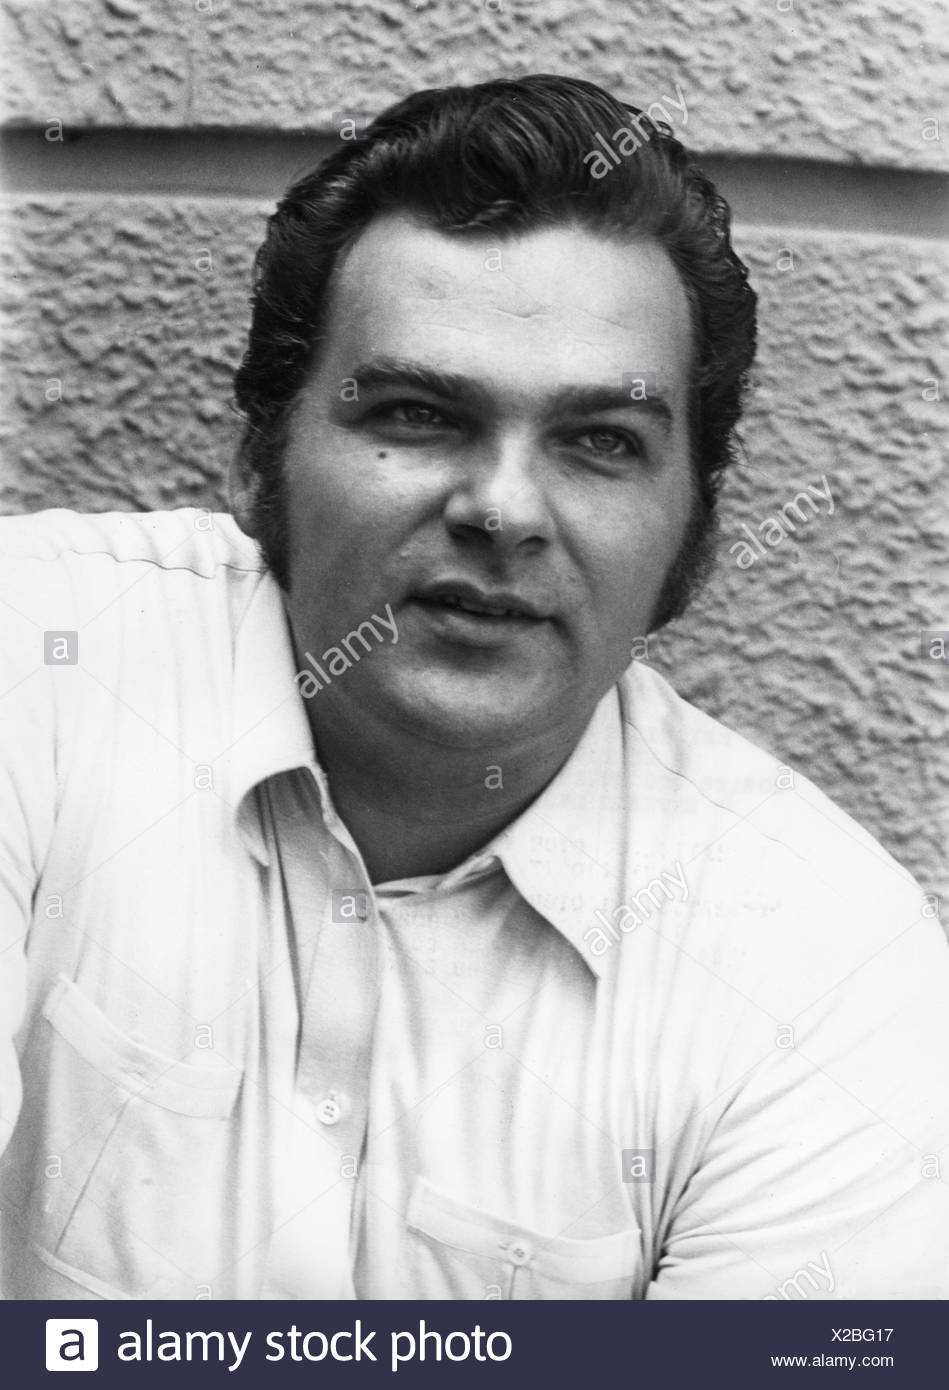 Hollweg, Werner, 13.9.1936 - 1.1.2007, German singer, portrait, 1970s, - Stock Image